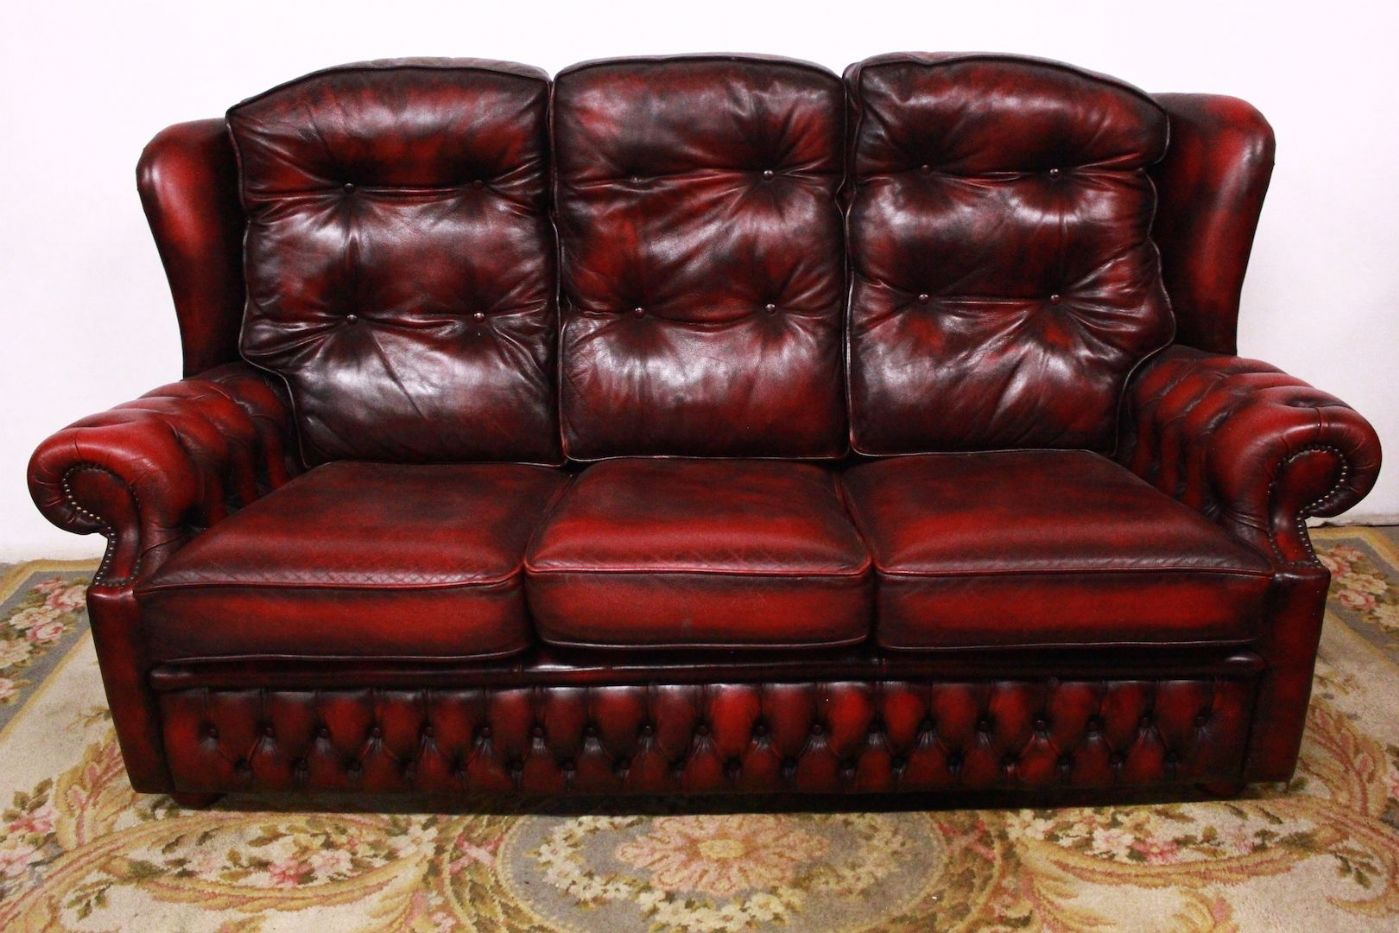 Divano Pelle Modello Chester.Lovely Chester Original 3 Seater Bordeaux English Leather Sofa